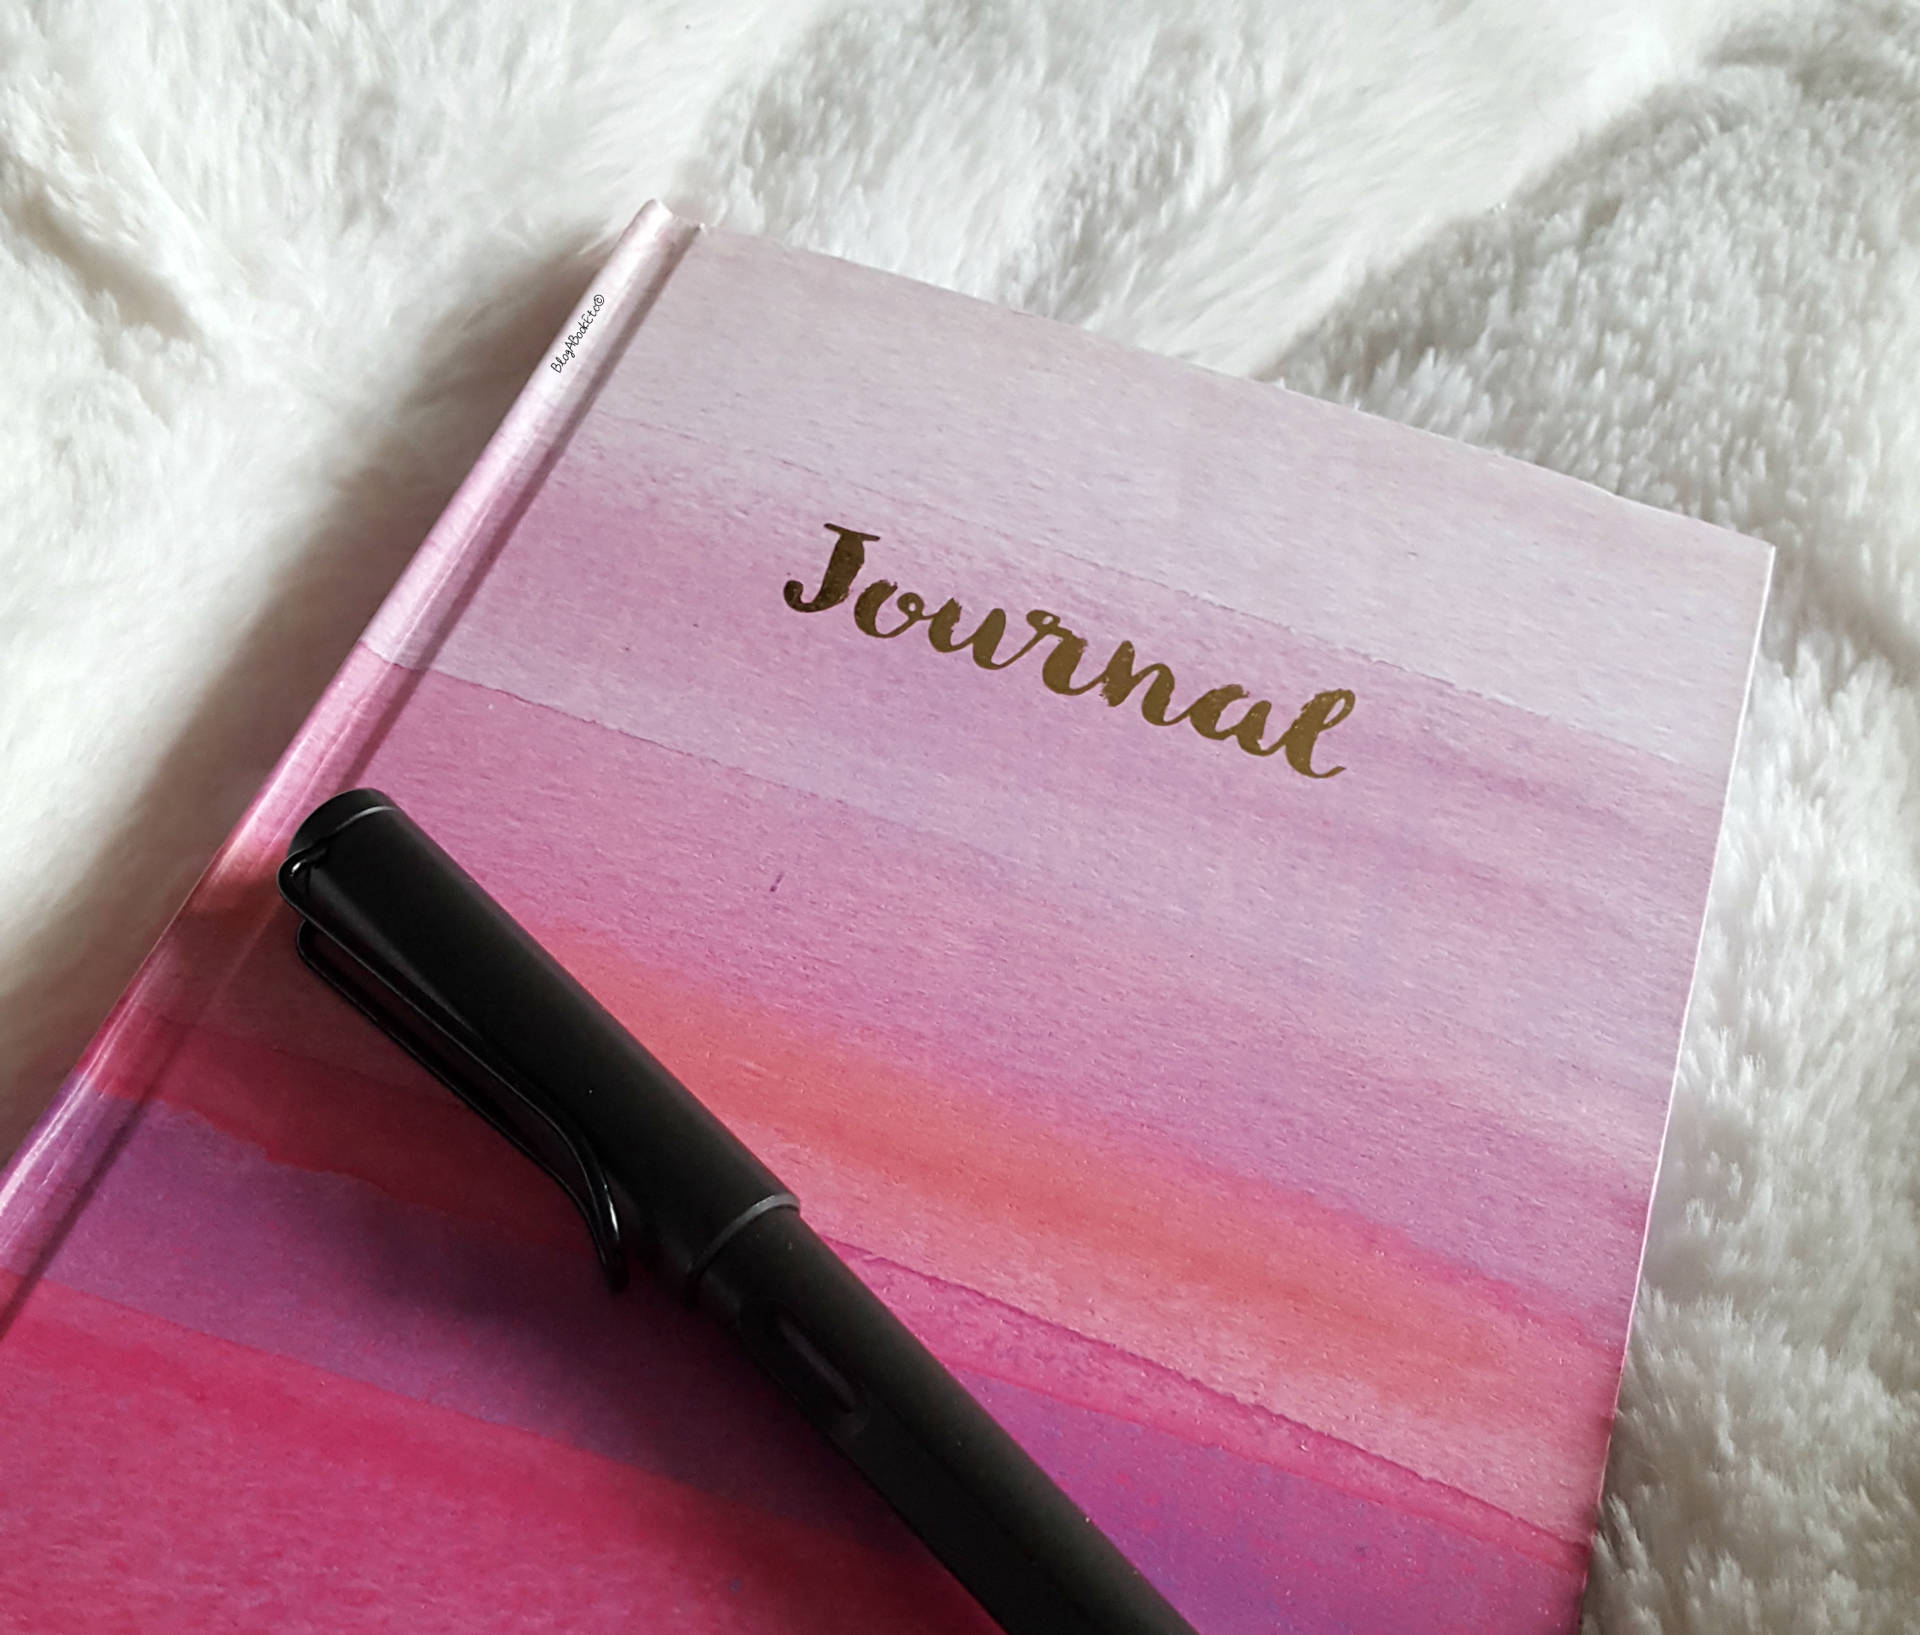 3 Things To Do When You Feel Like A Failure, Dunelm, Write, Tesco, Journal, Writing, Journalling, Lamy, Pens, Stationery, Write, Diary, Blogger, Life, Lifestyle, Blog A Book Etc, Fay